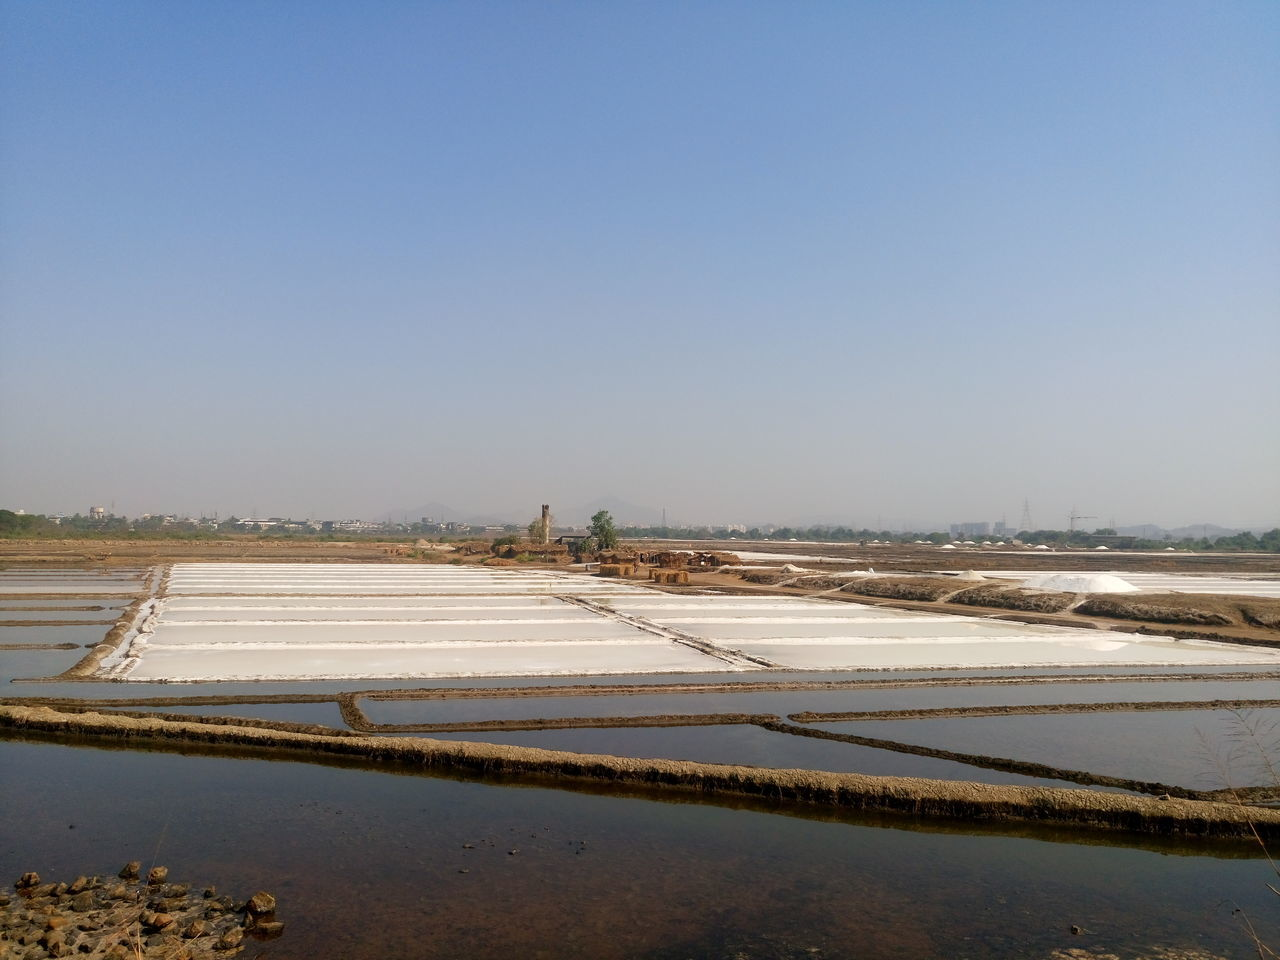 Agriculture Beauty In Nature Clear Sky Day Landscape Nature No People Outdoors Salt - Mineral Salt Basin Salt Flat Snow Water Winter